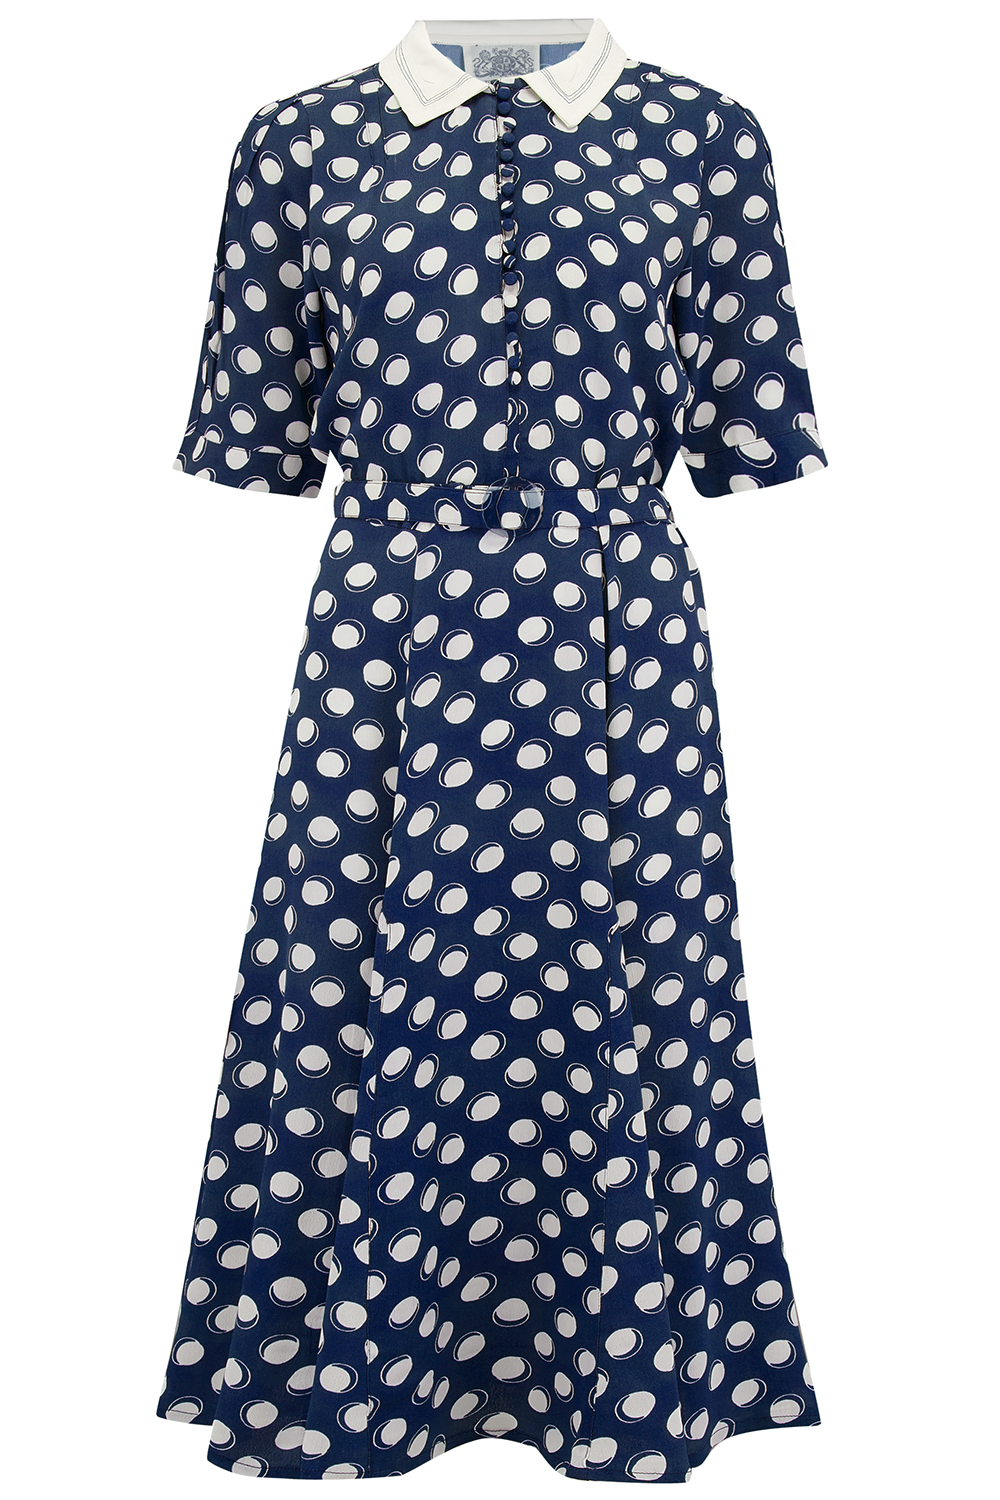 1940s Dress Styles Lucy Dress in Navy Moonshine Spot Authentic  Classic 1940s True Vintage Inspired Style £79.00 AT vintagedancer.com